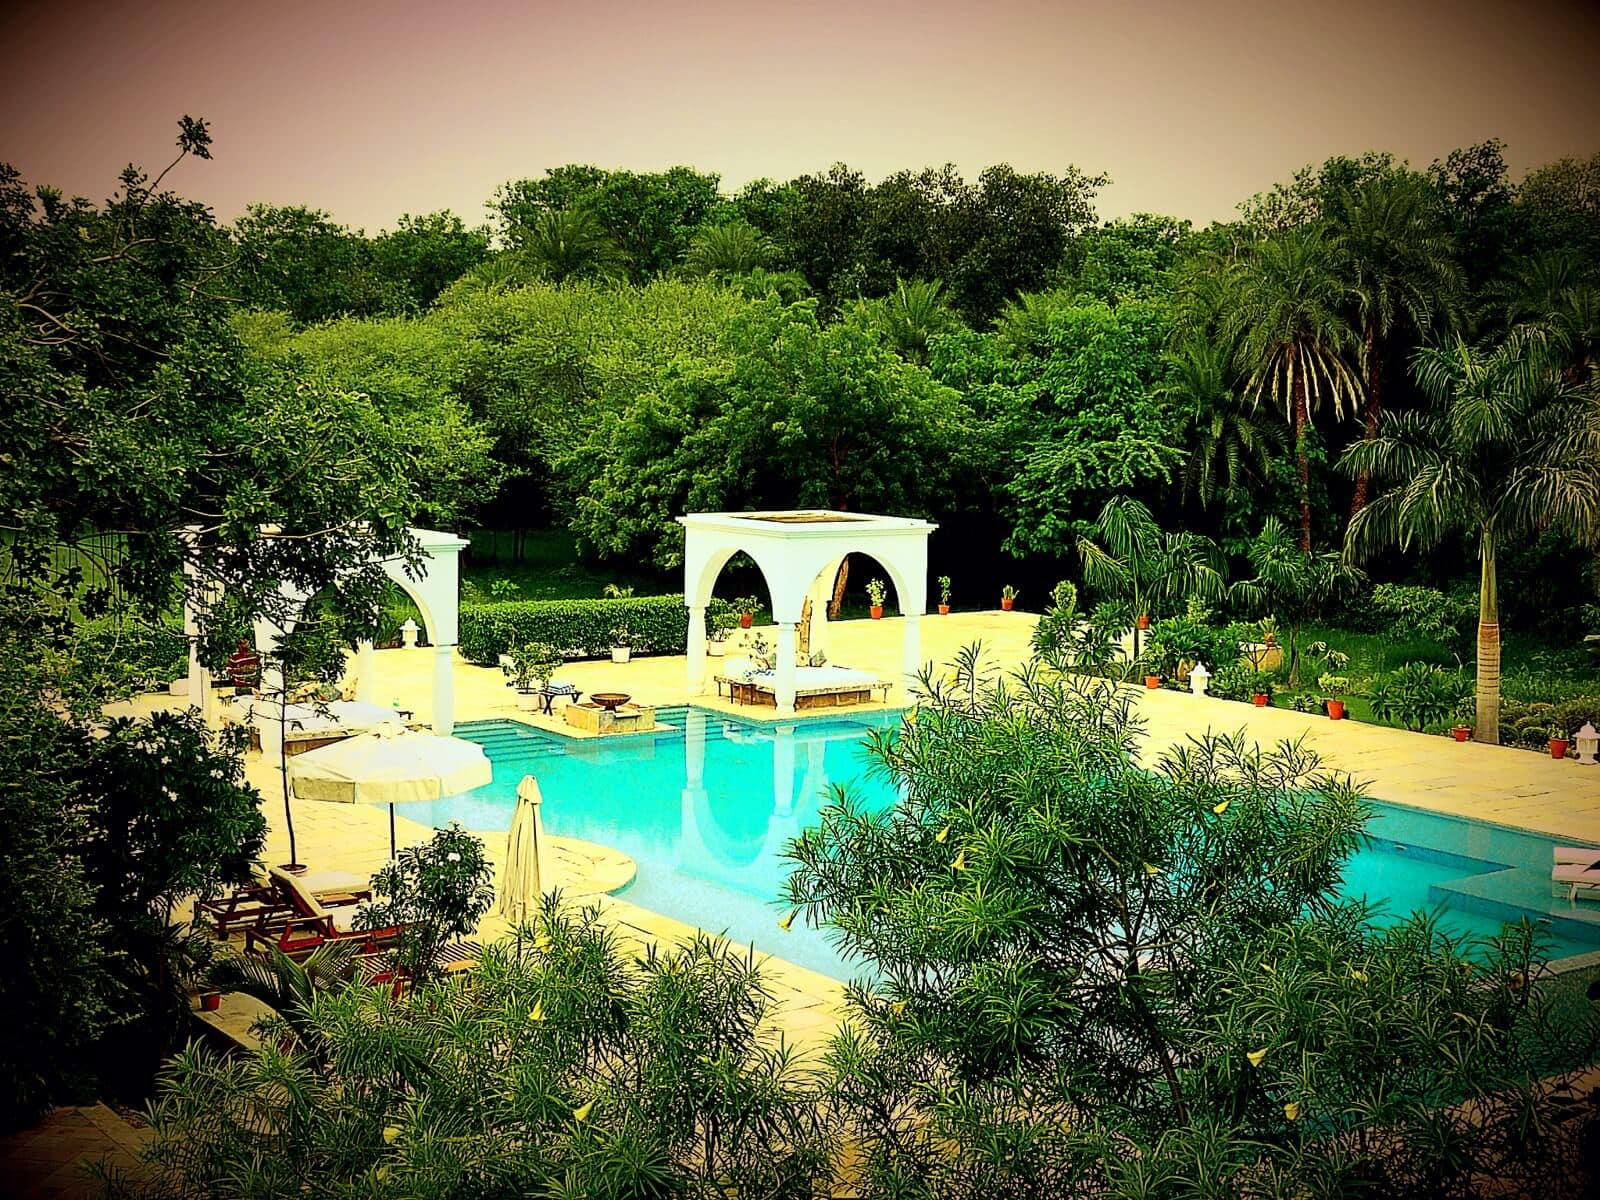 The Pool at Shahpura Bagh